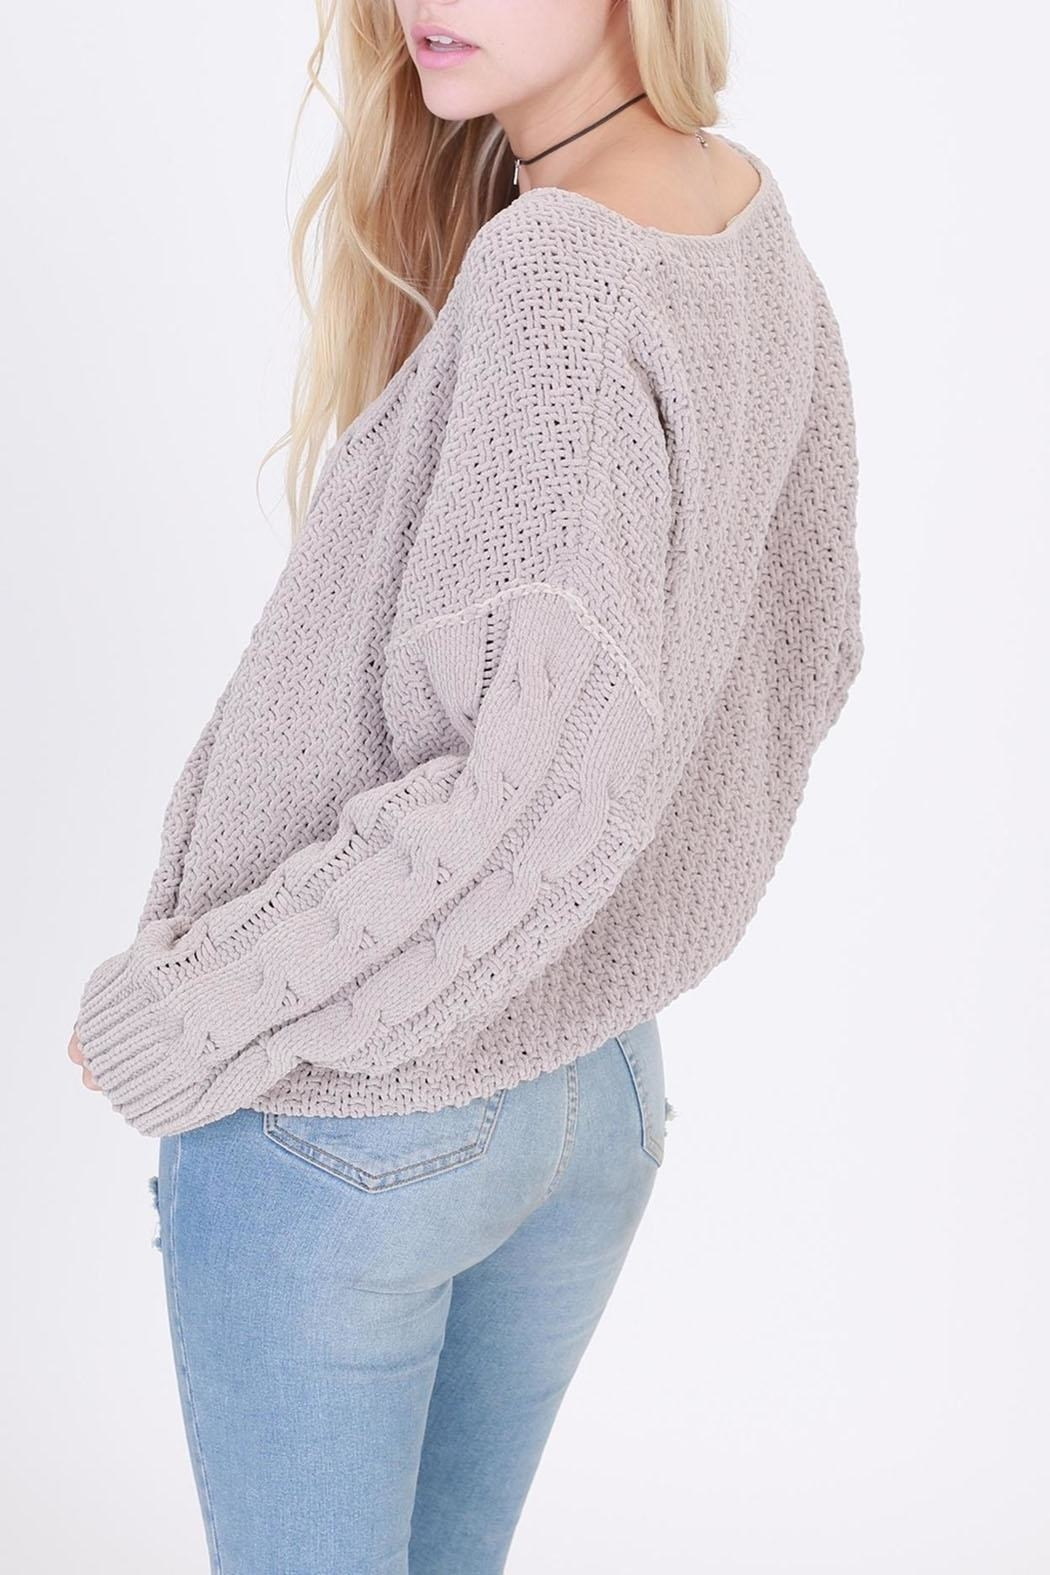 HYFVE Pullover Cropped Sweater - Front Cropped Image